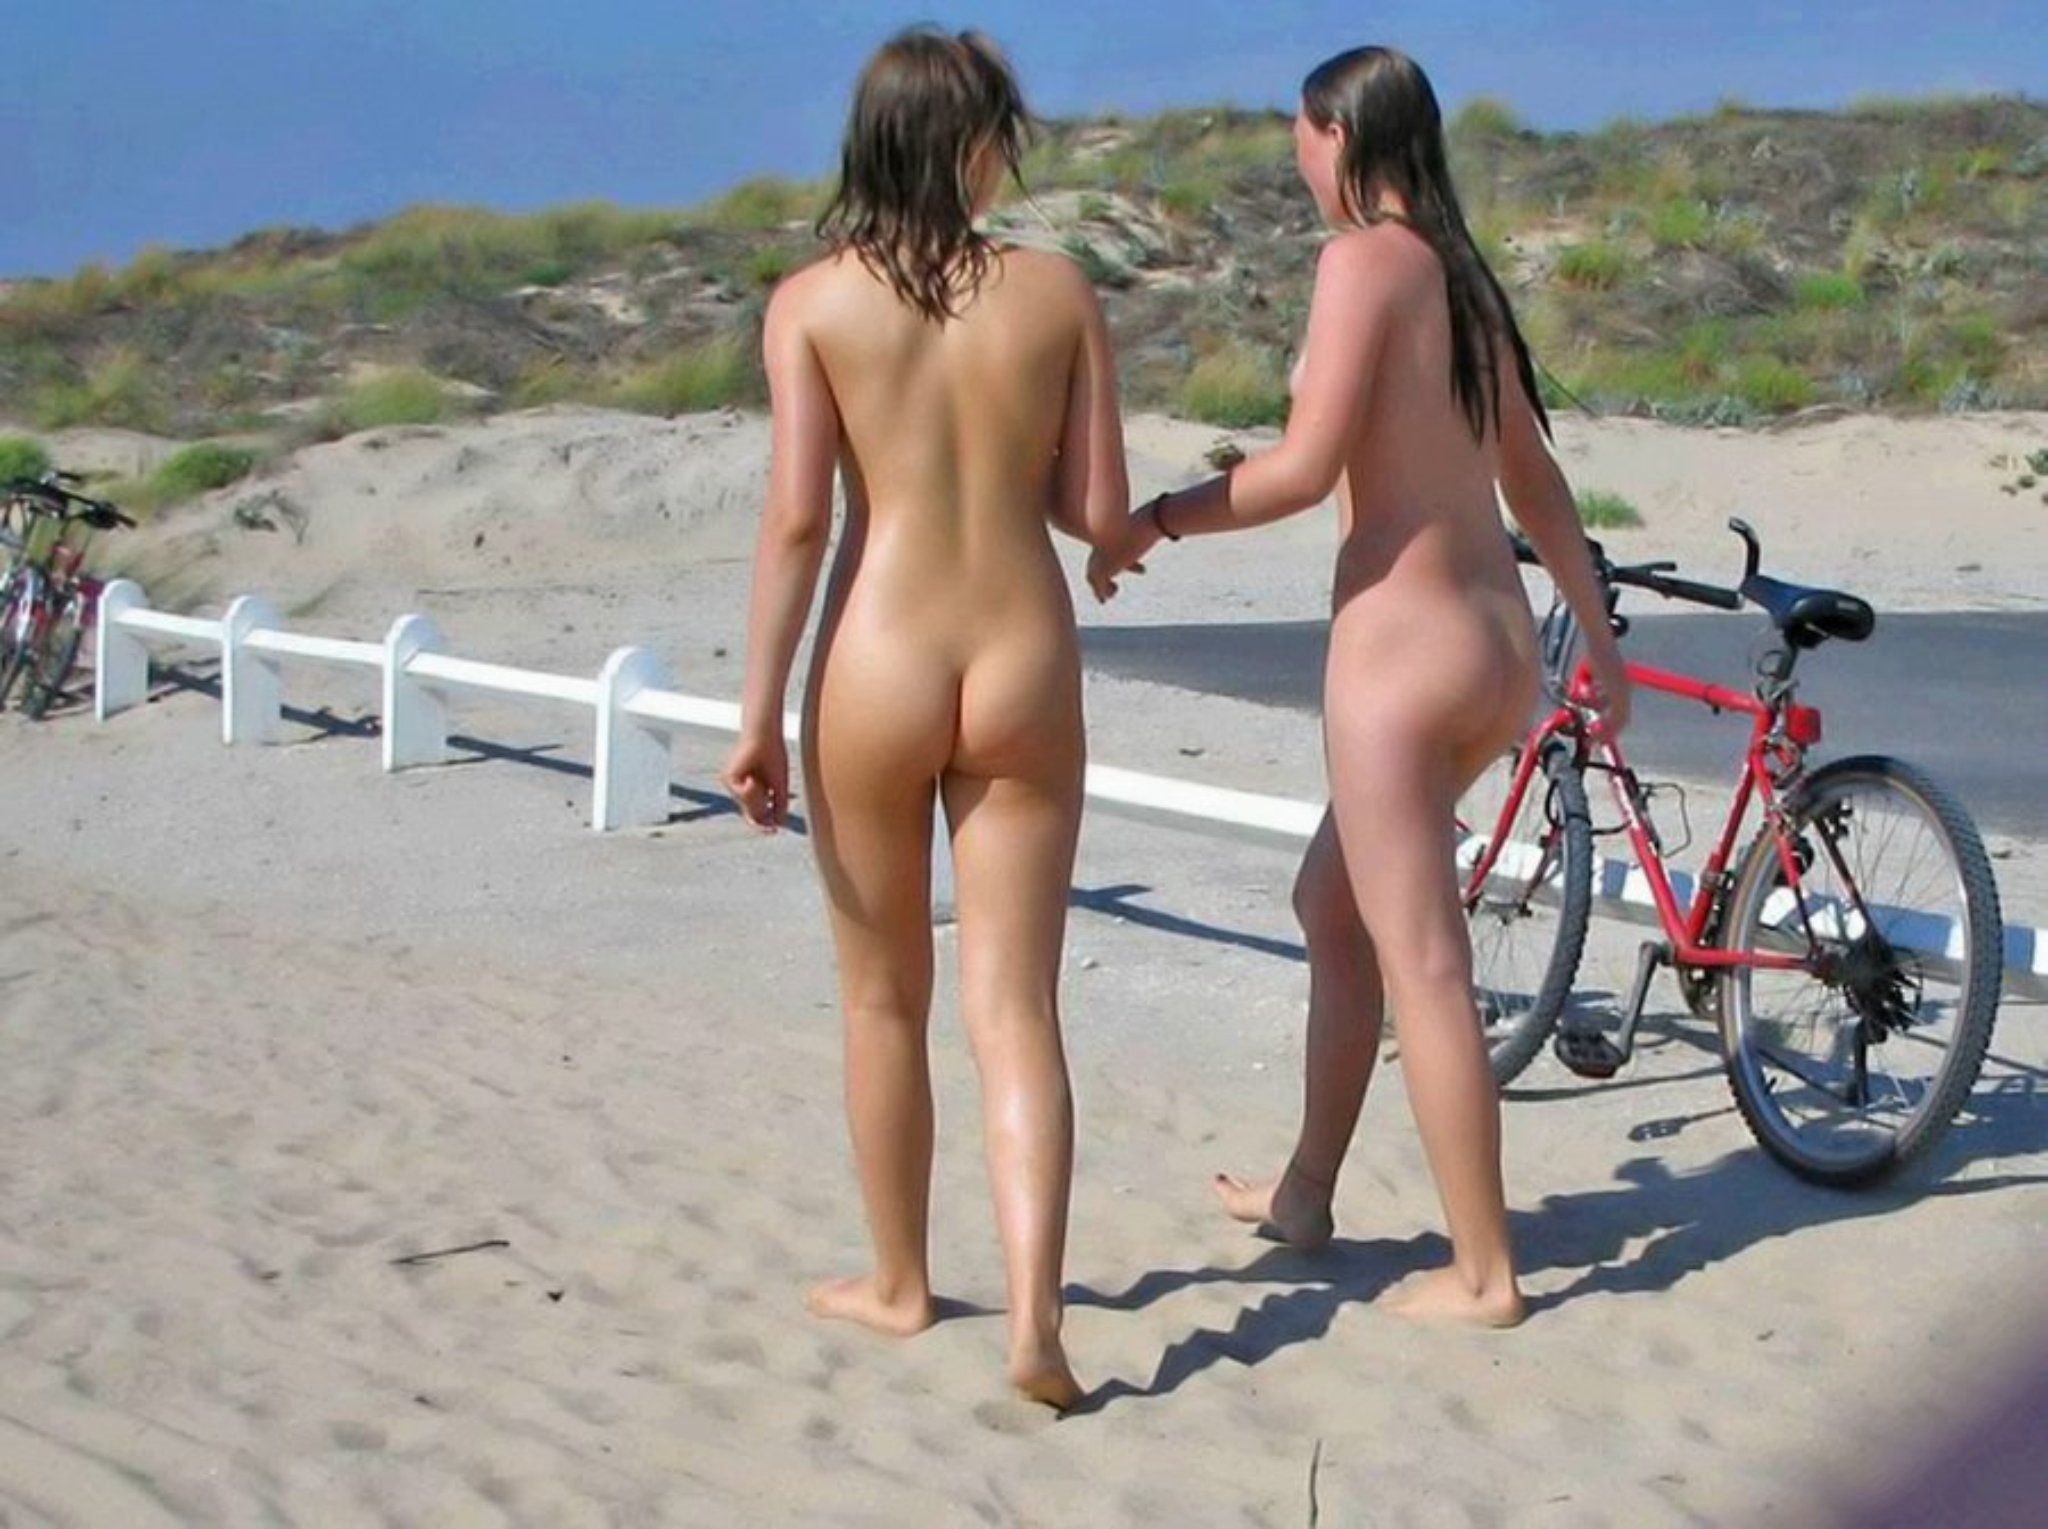 Nudist teens after a cooling swim in ocean